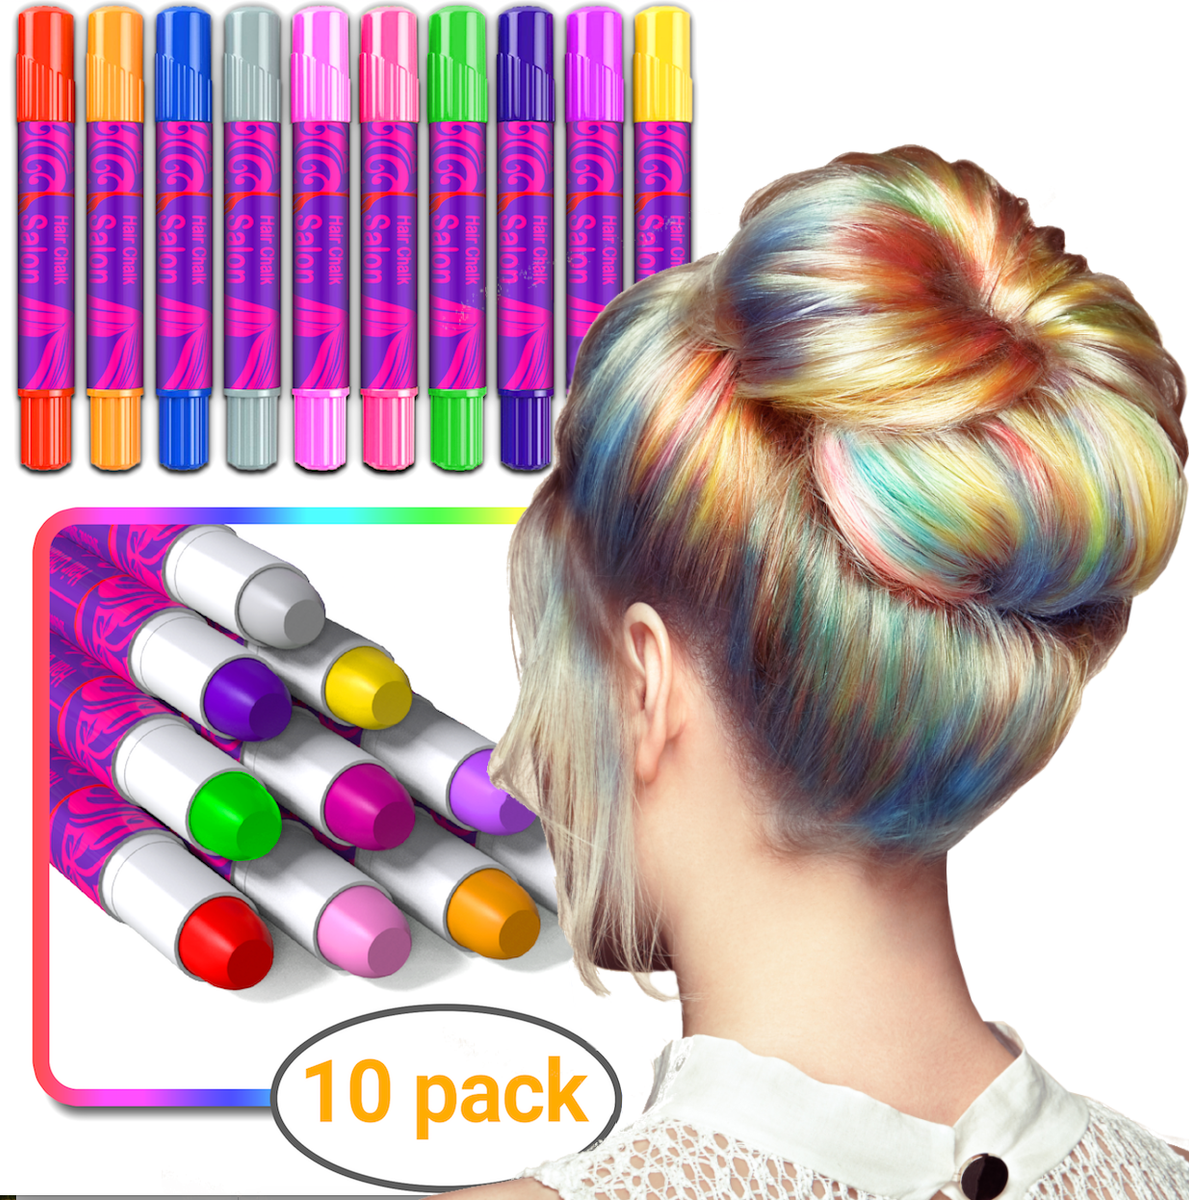 Desire Deluxe Girls Gifts Hair Chalk Gift for Girls – 10 Temporary  Non-Toxic Easy Washable Hair Dye Colourful Pens – Great Games Birthday  Christmas ...